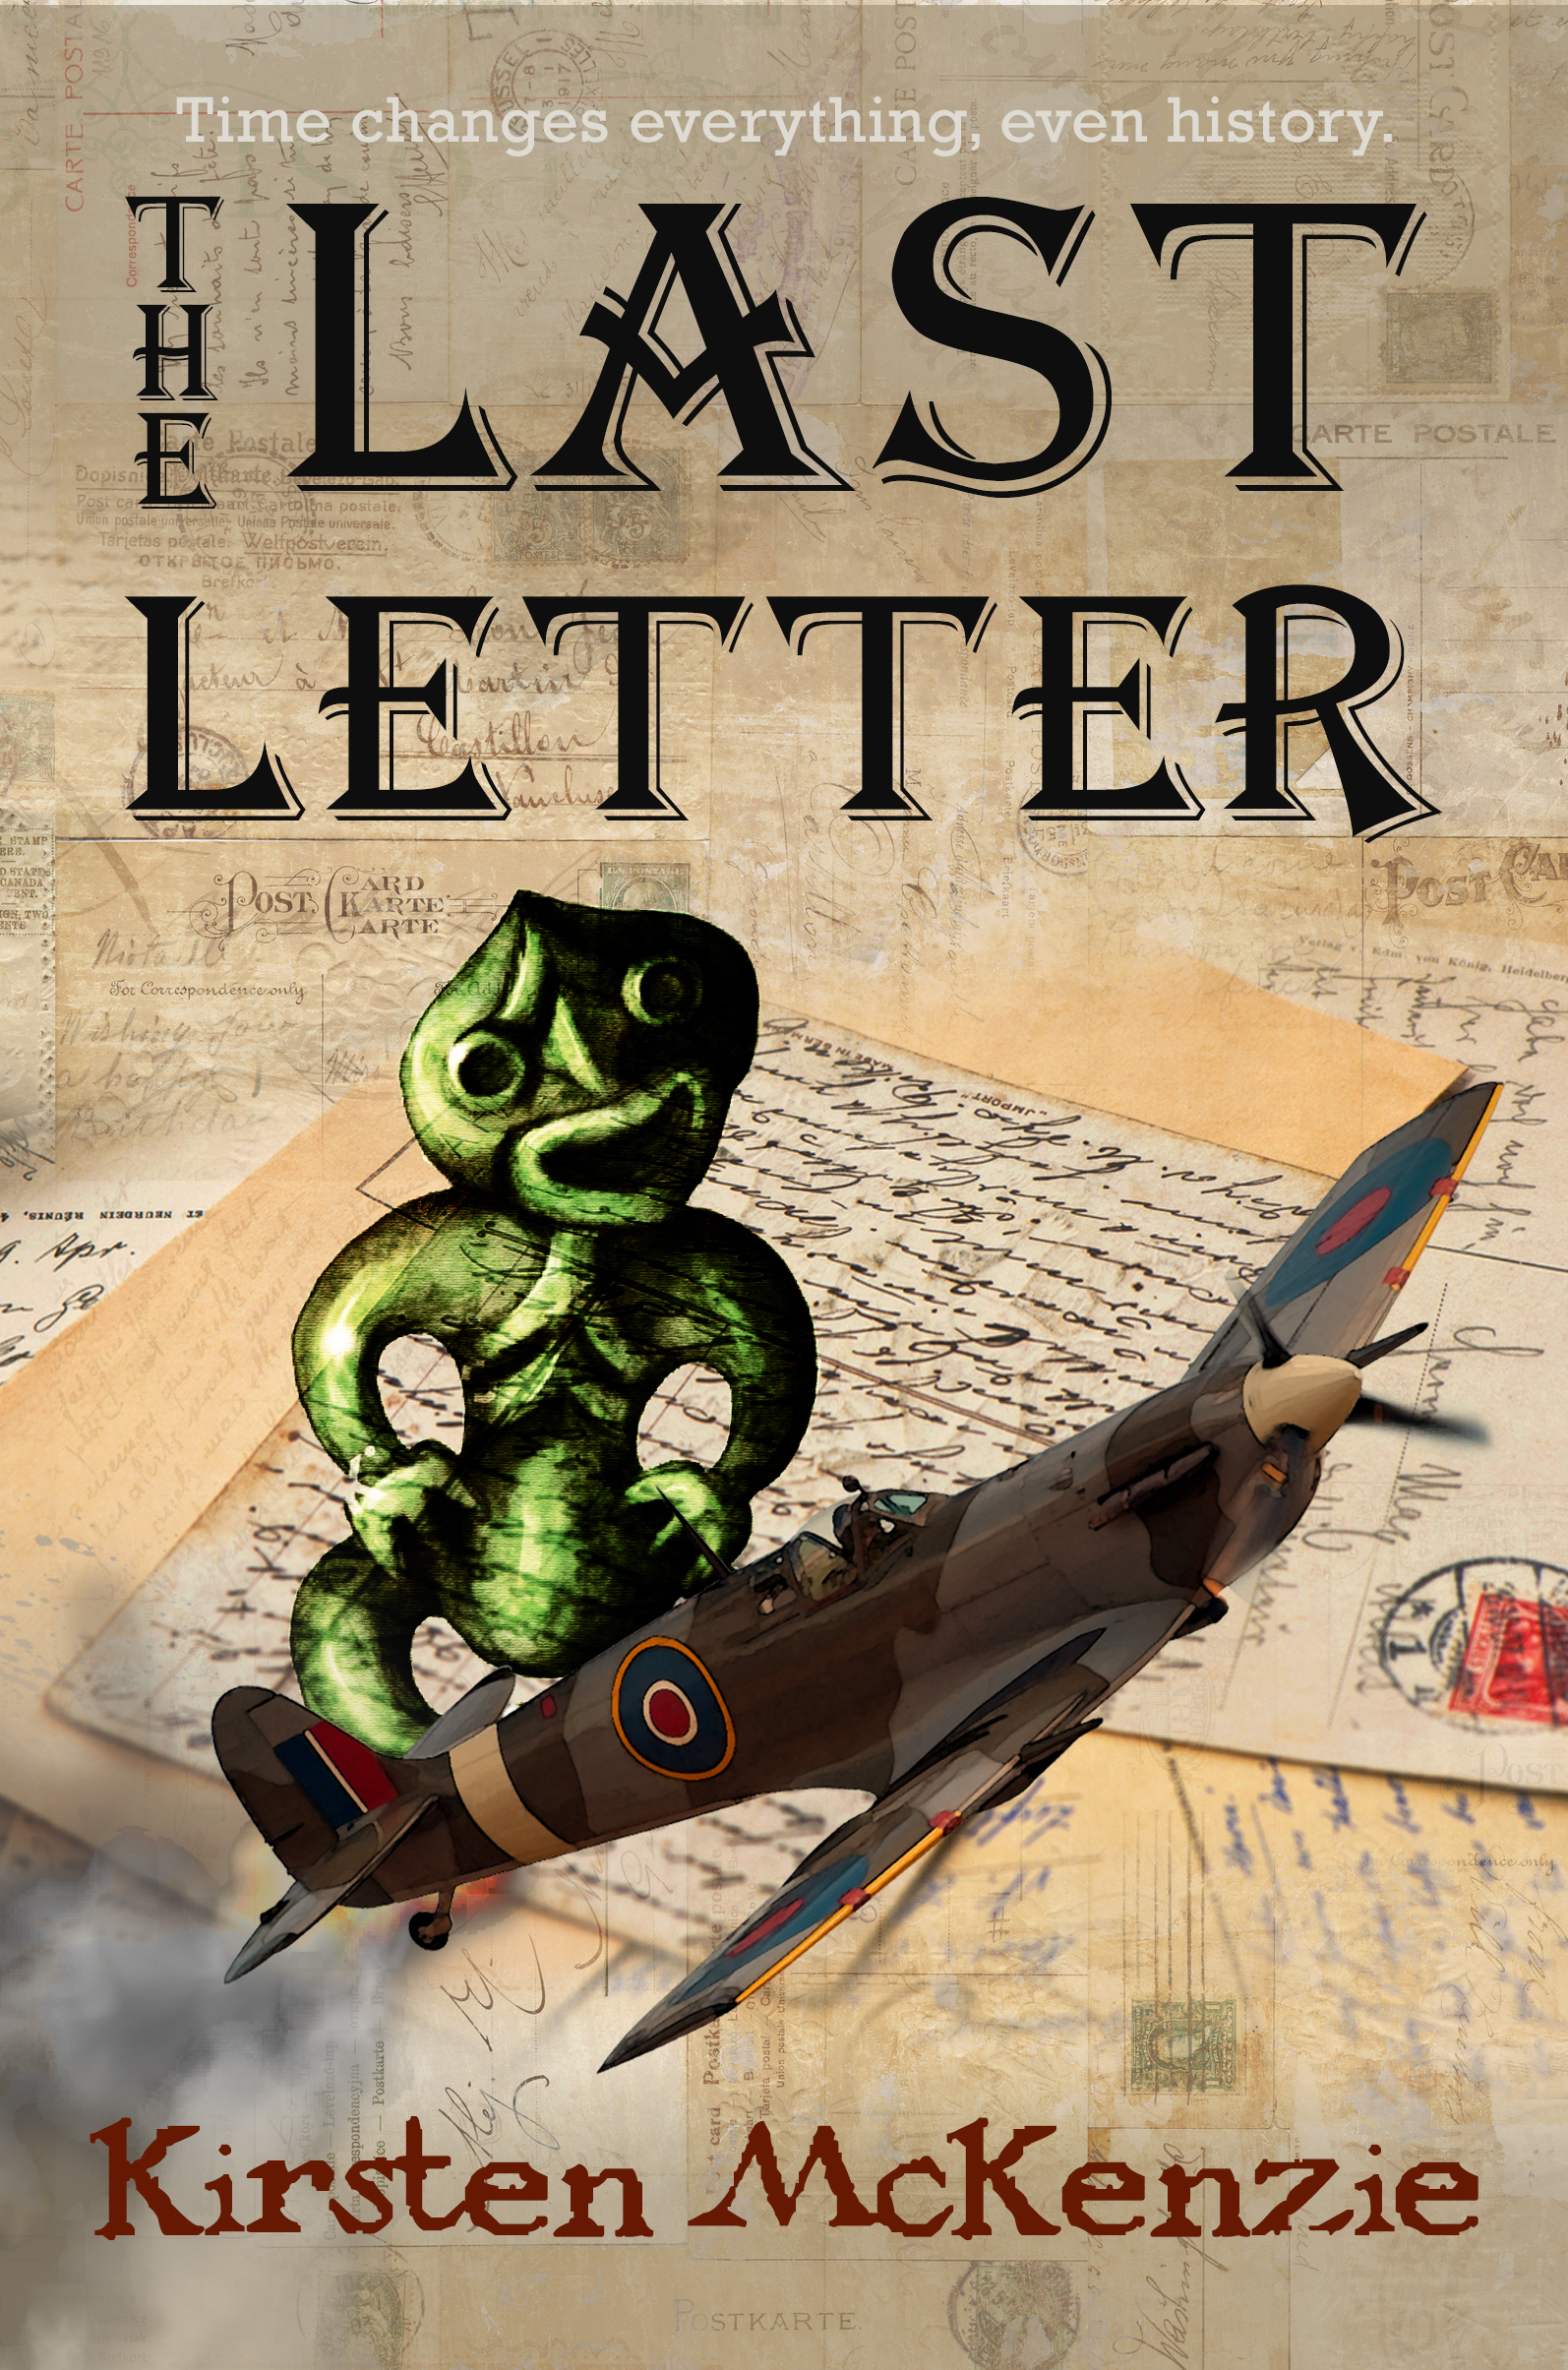 Draft #2 of the cover for 'The Last Letter'. We all agreed that the balance was out.